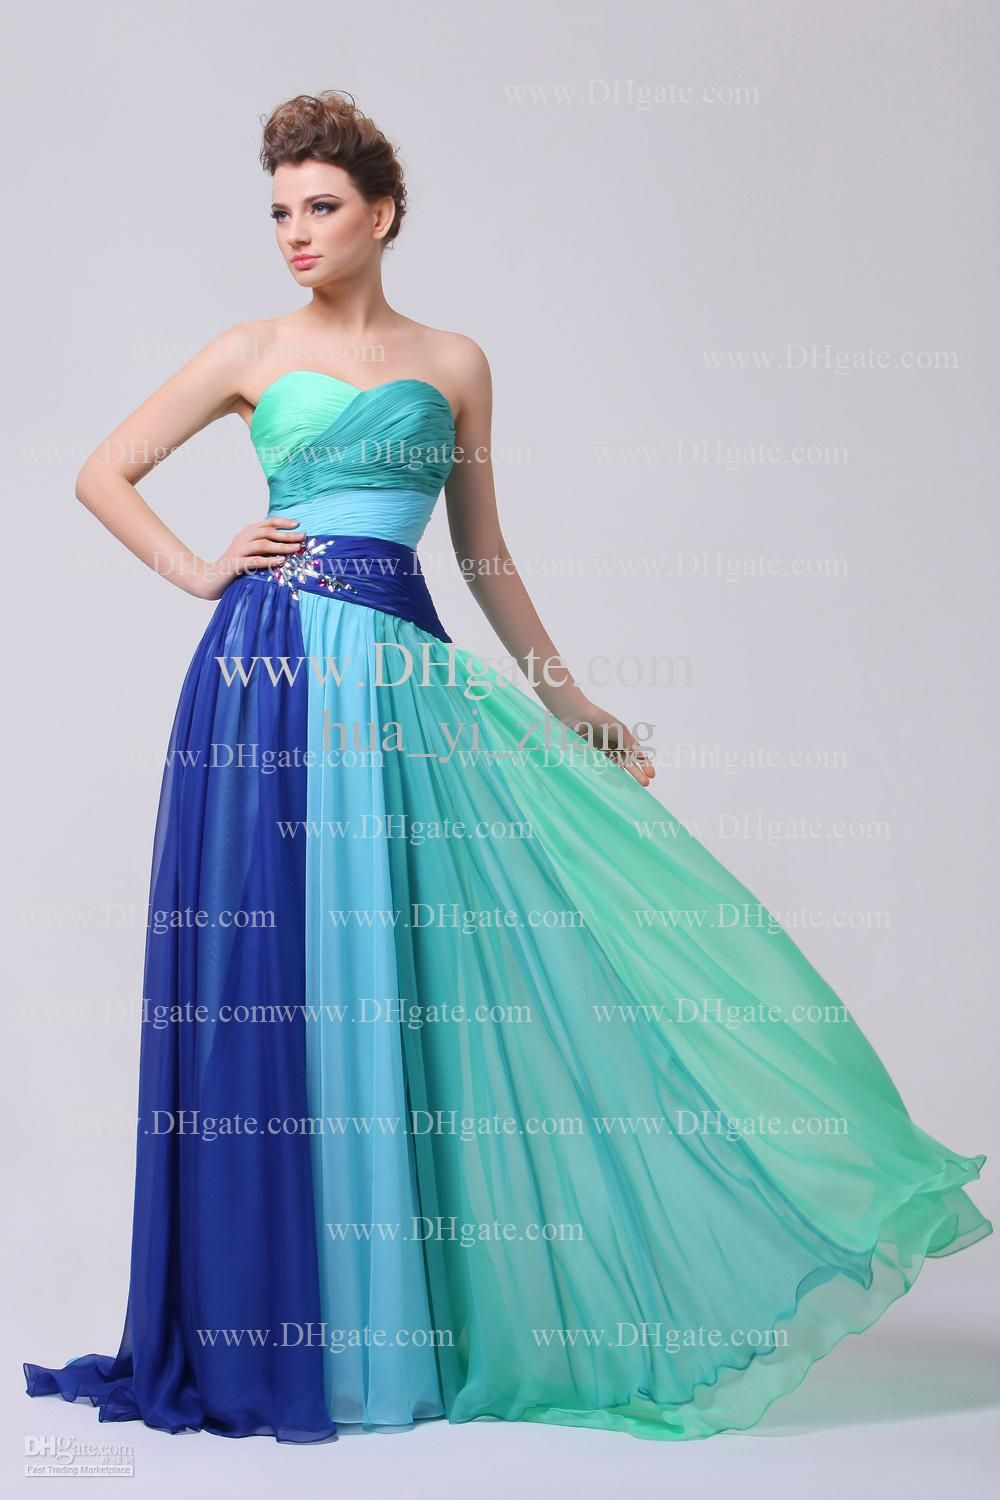 Colorful Prom Dresses 2015 Sweetheart Pleated Bodice Beaded ...